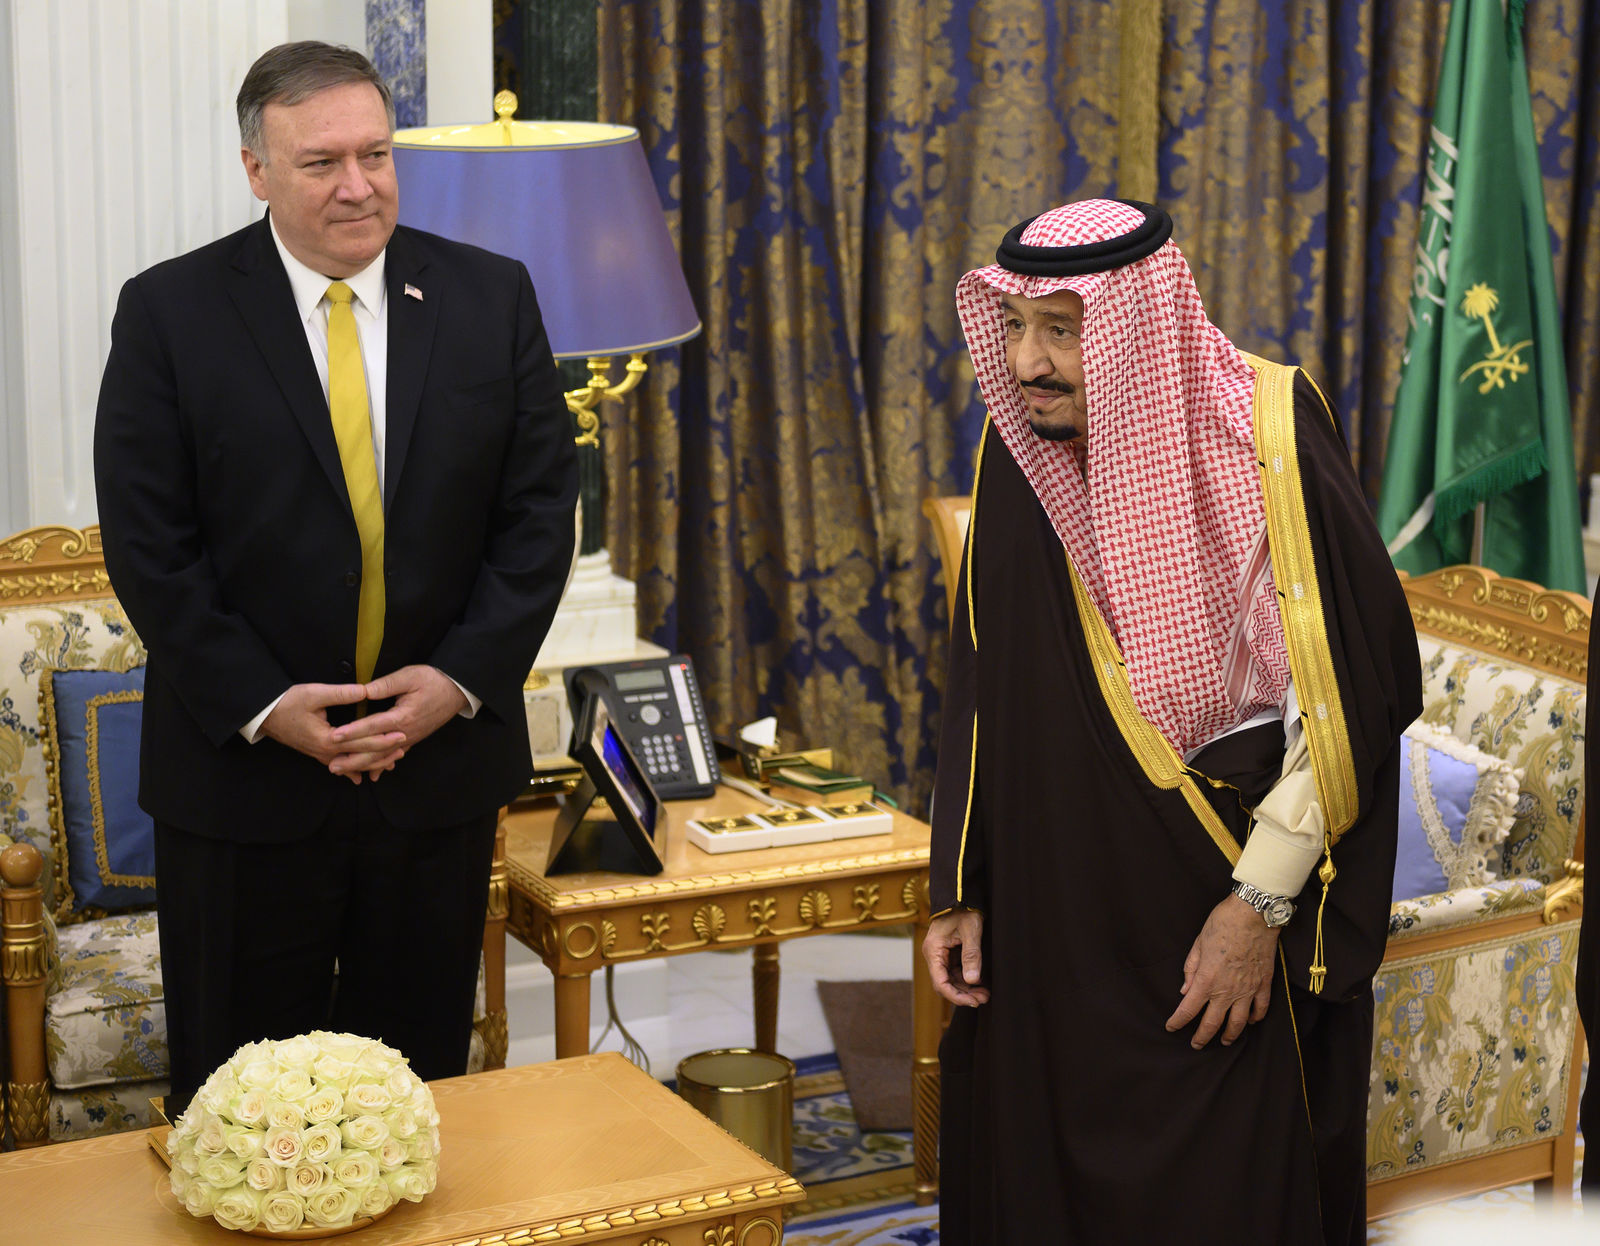 Saudi Arabia's King Salman, right meets with U.S. Secretary of State Mike Pompeo at the Royal Court in Riyadh, Saudi Arabia, Monday, January 14, 2019.{ } (Andrew Cabellero-Reynolds/Pool via AP)